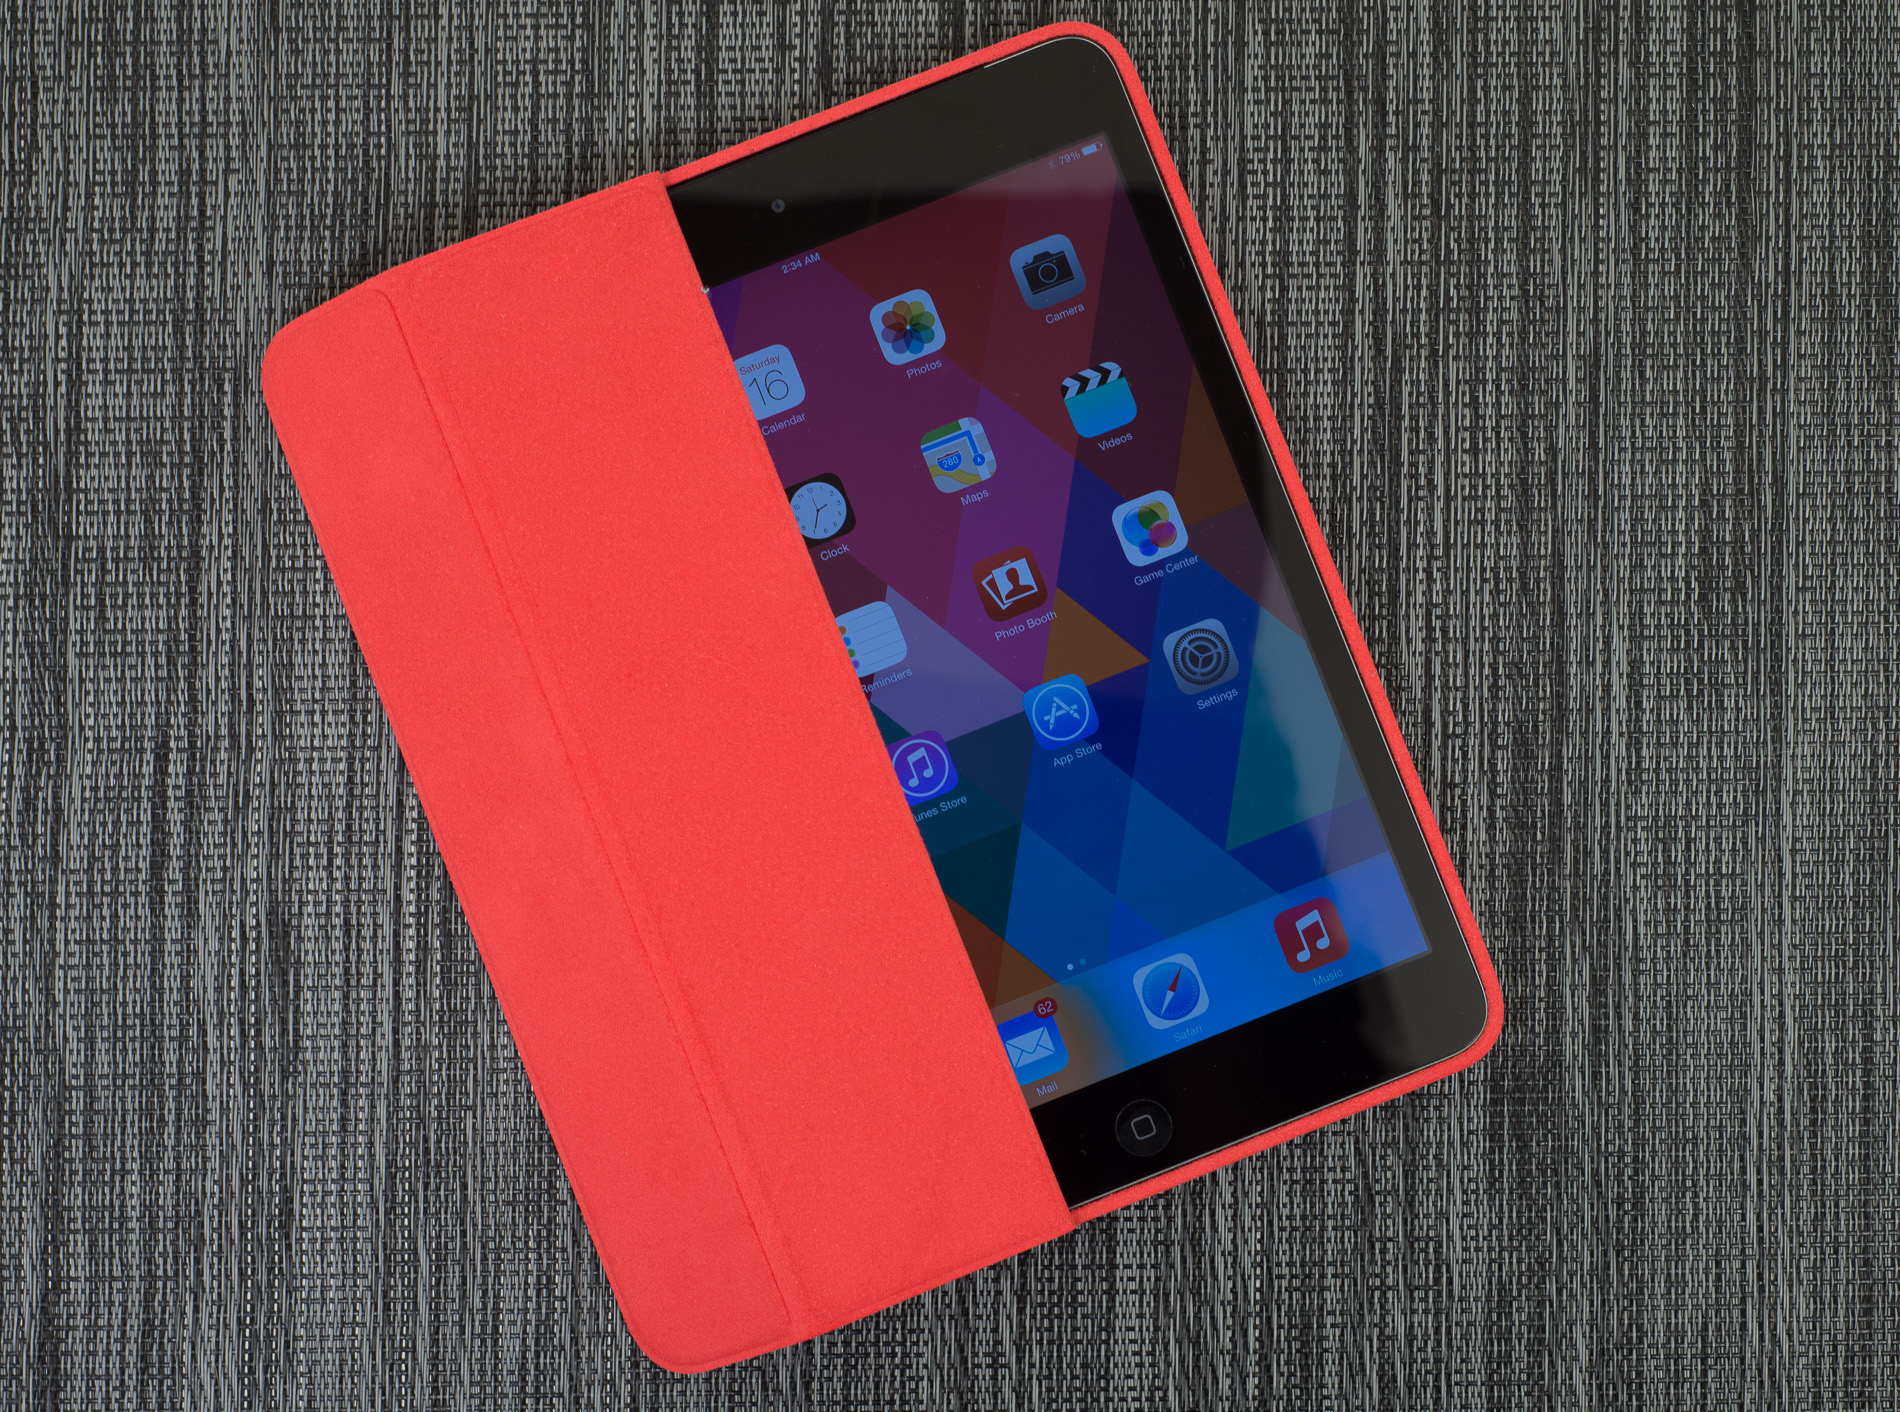 mini case a job at s s air Sizes: ipad air 2 / ipad air / ipad 2,3,4 / ipad mini what cases, covers or sleeves would you be first to recommend give your opinion on the best ipad cases for schools in the comments below.